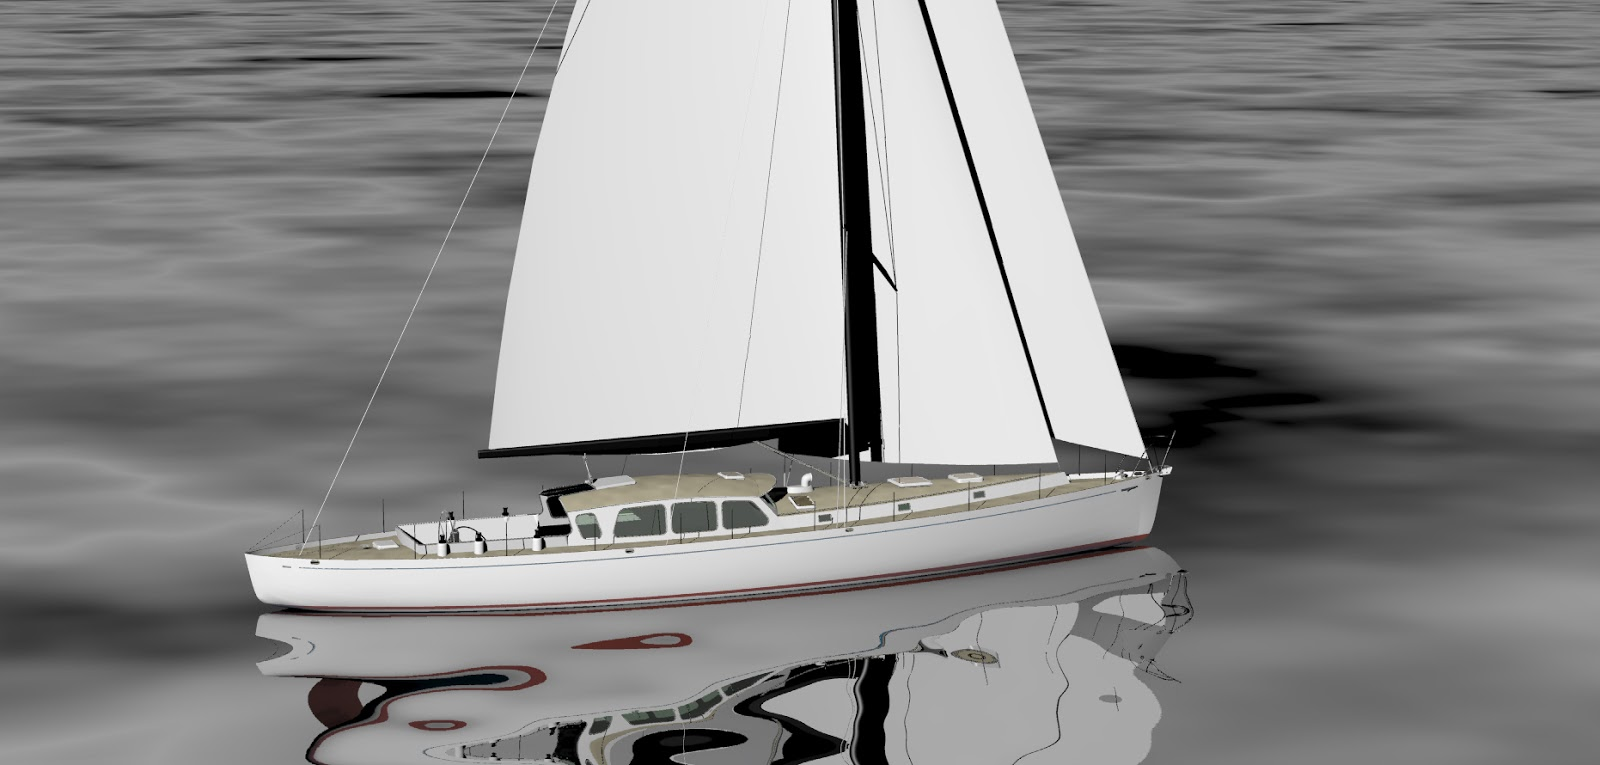 Tanton Yacht Design  Boat Design Of The Month  March 2016